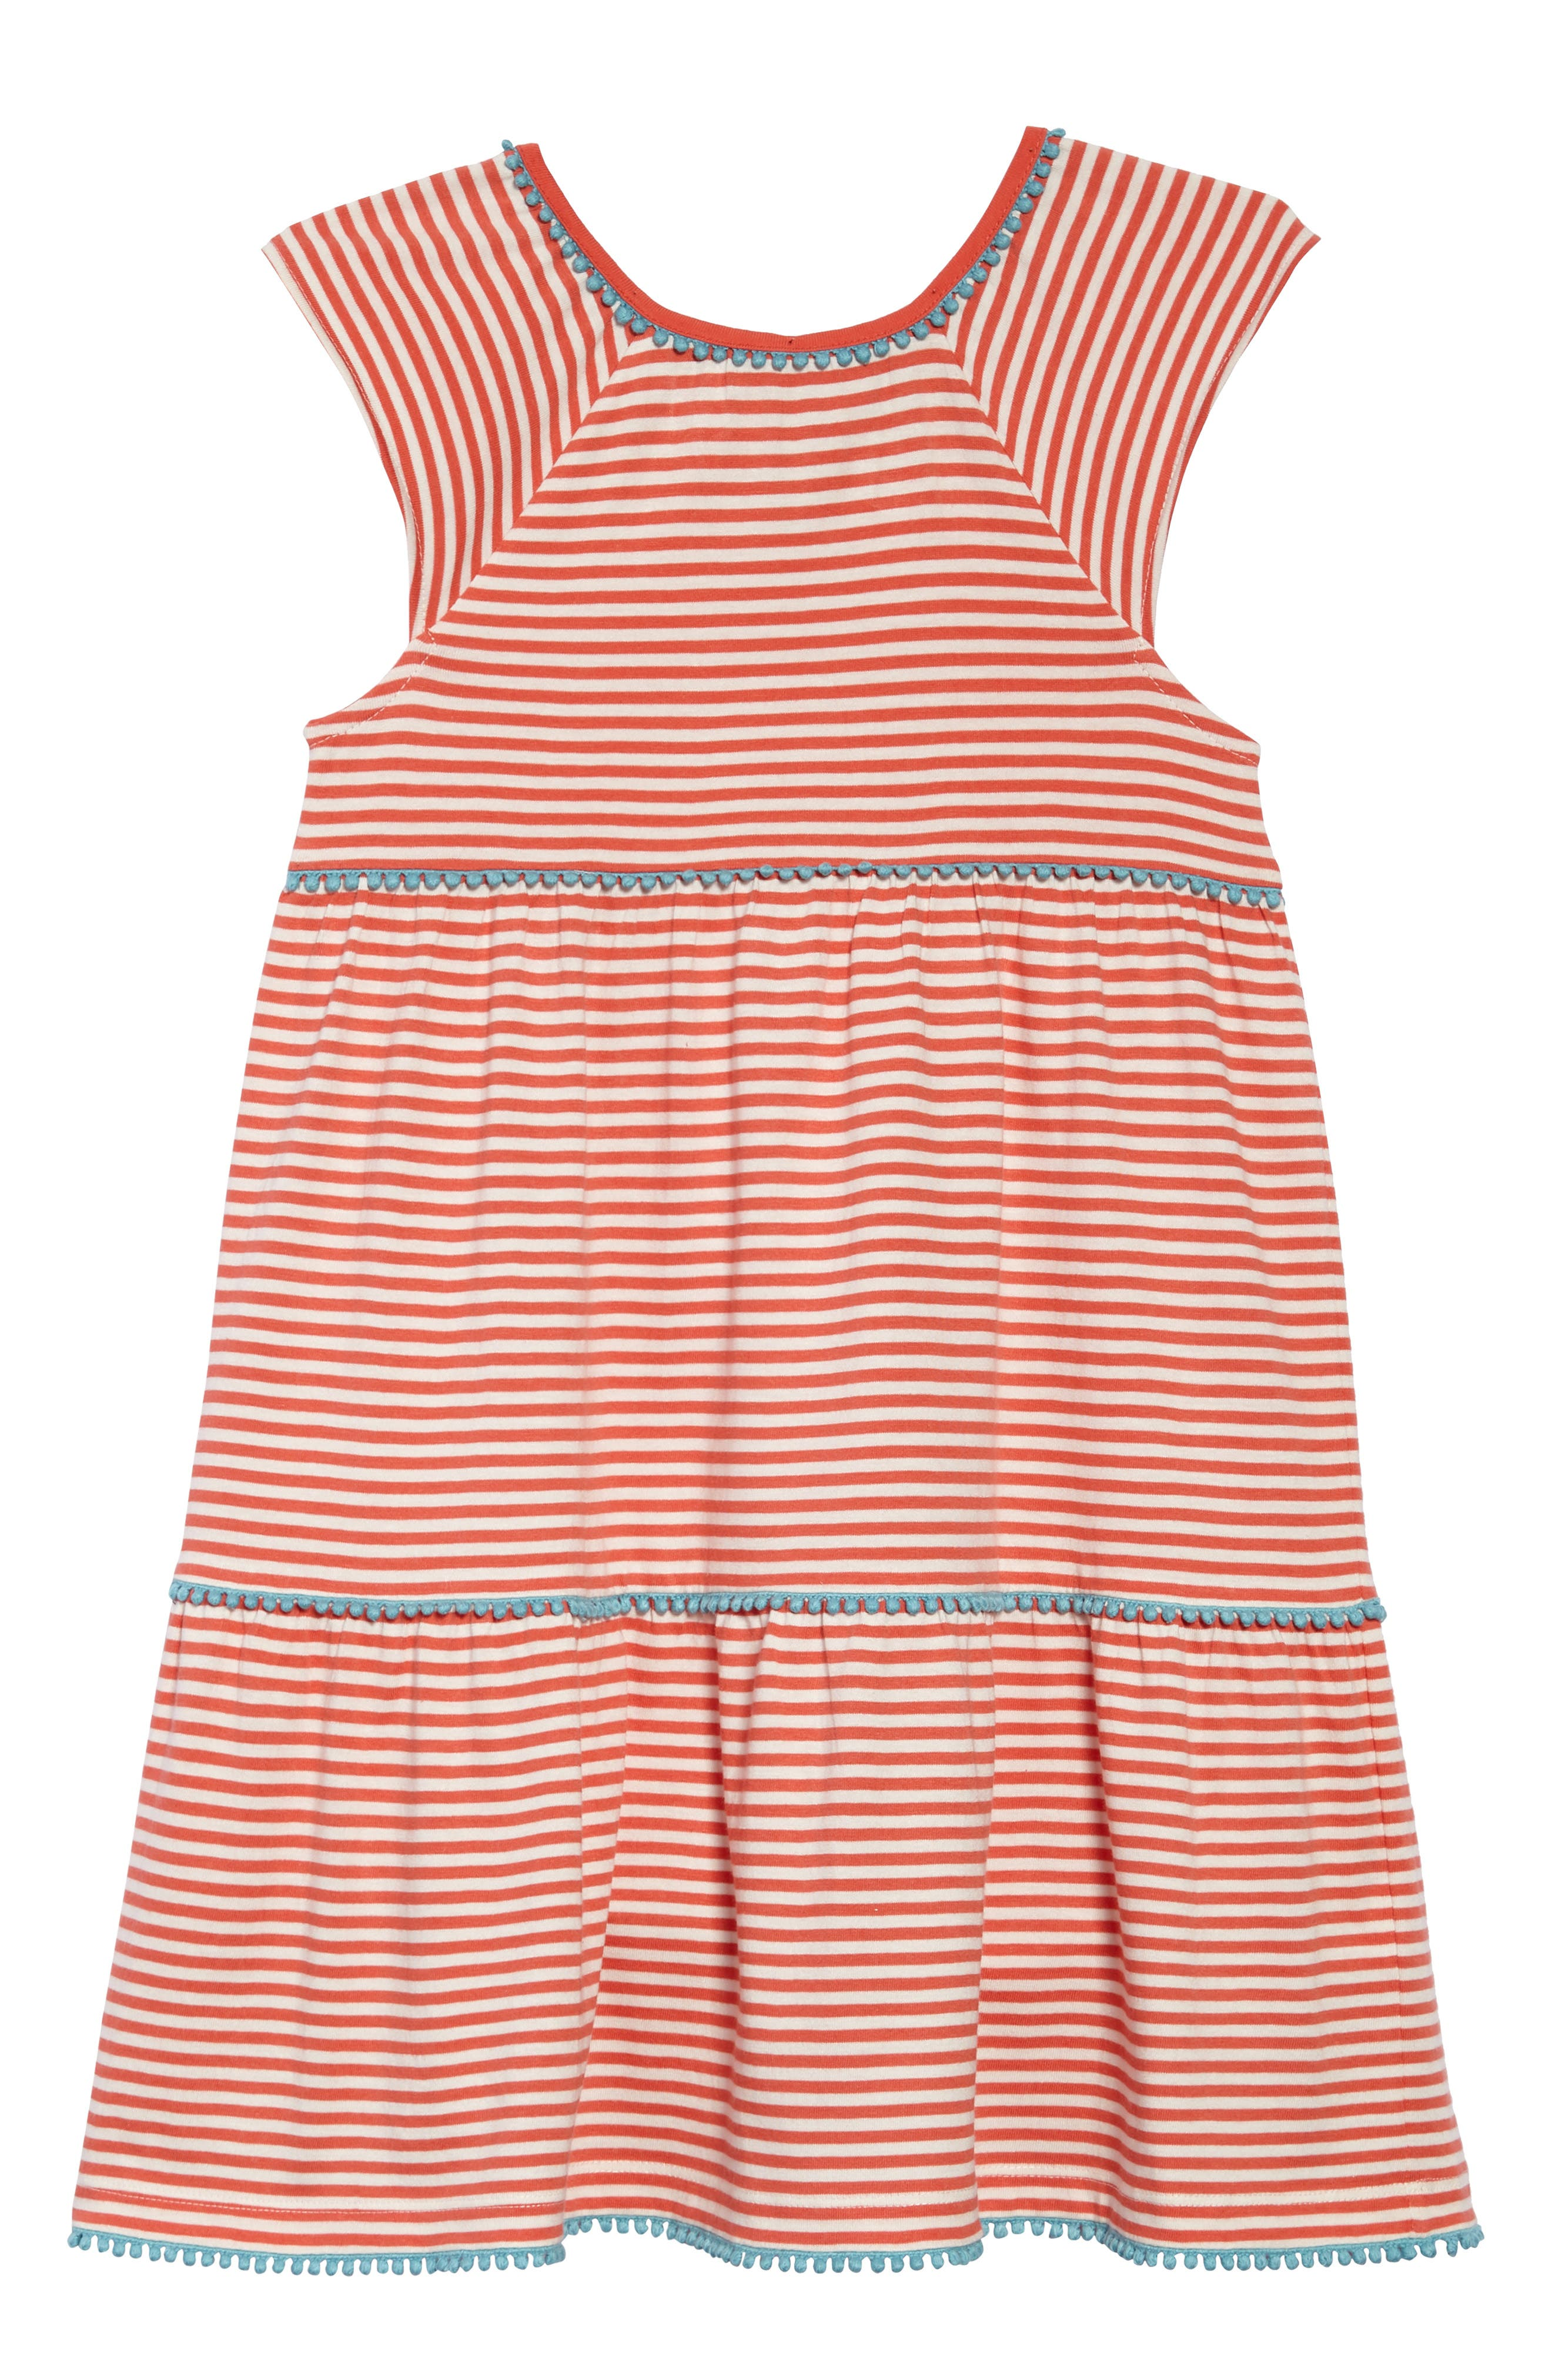 Tiered Jersey Frill Dress,                             Main thumbnail 1, color,                             Melon Crush Orange/ Ivory Ora